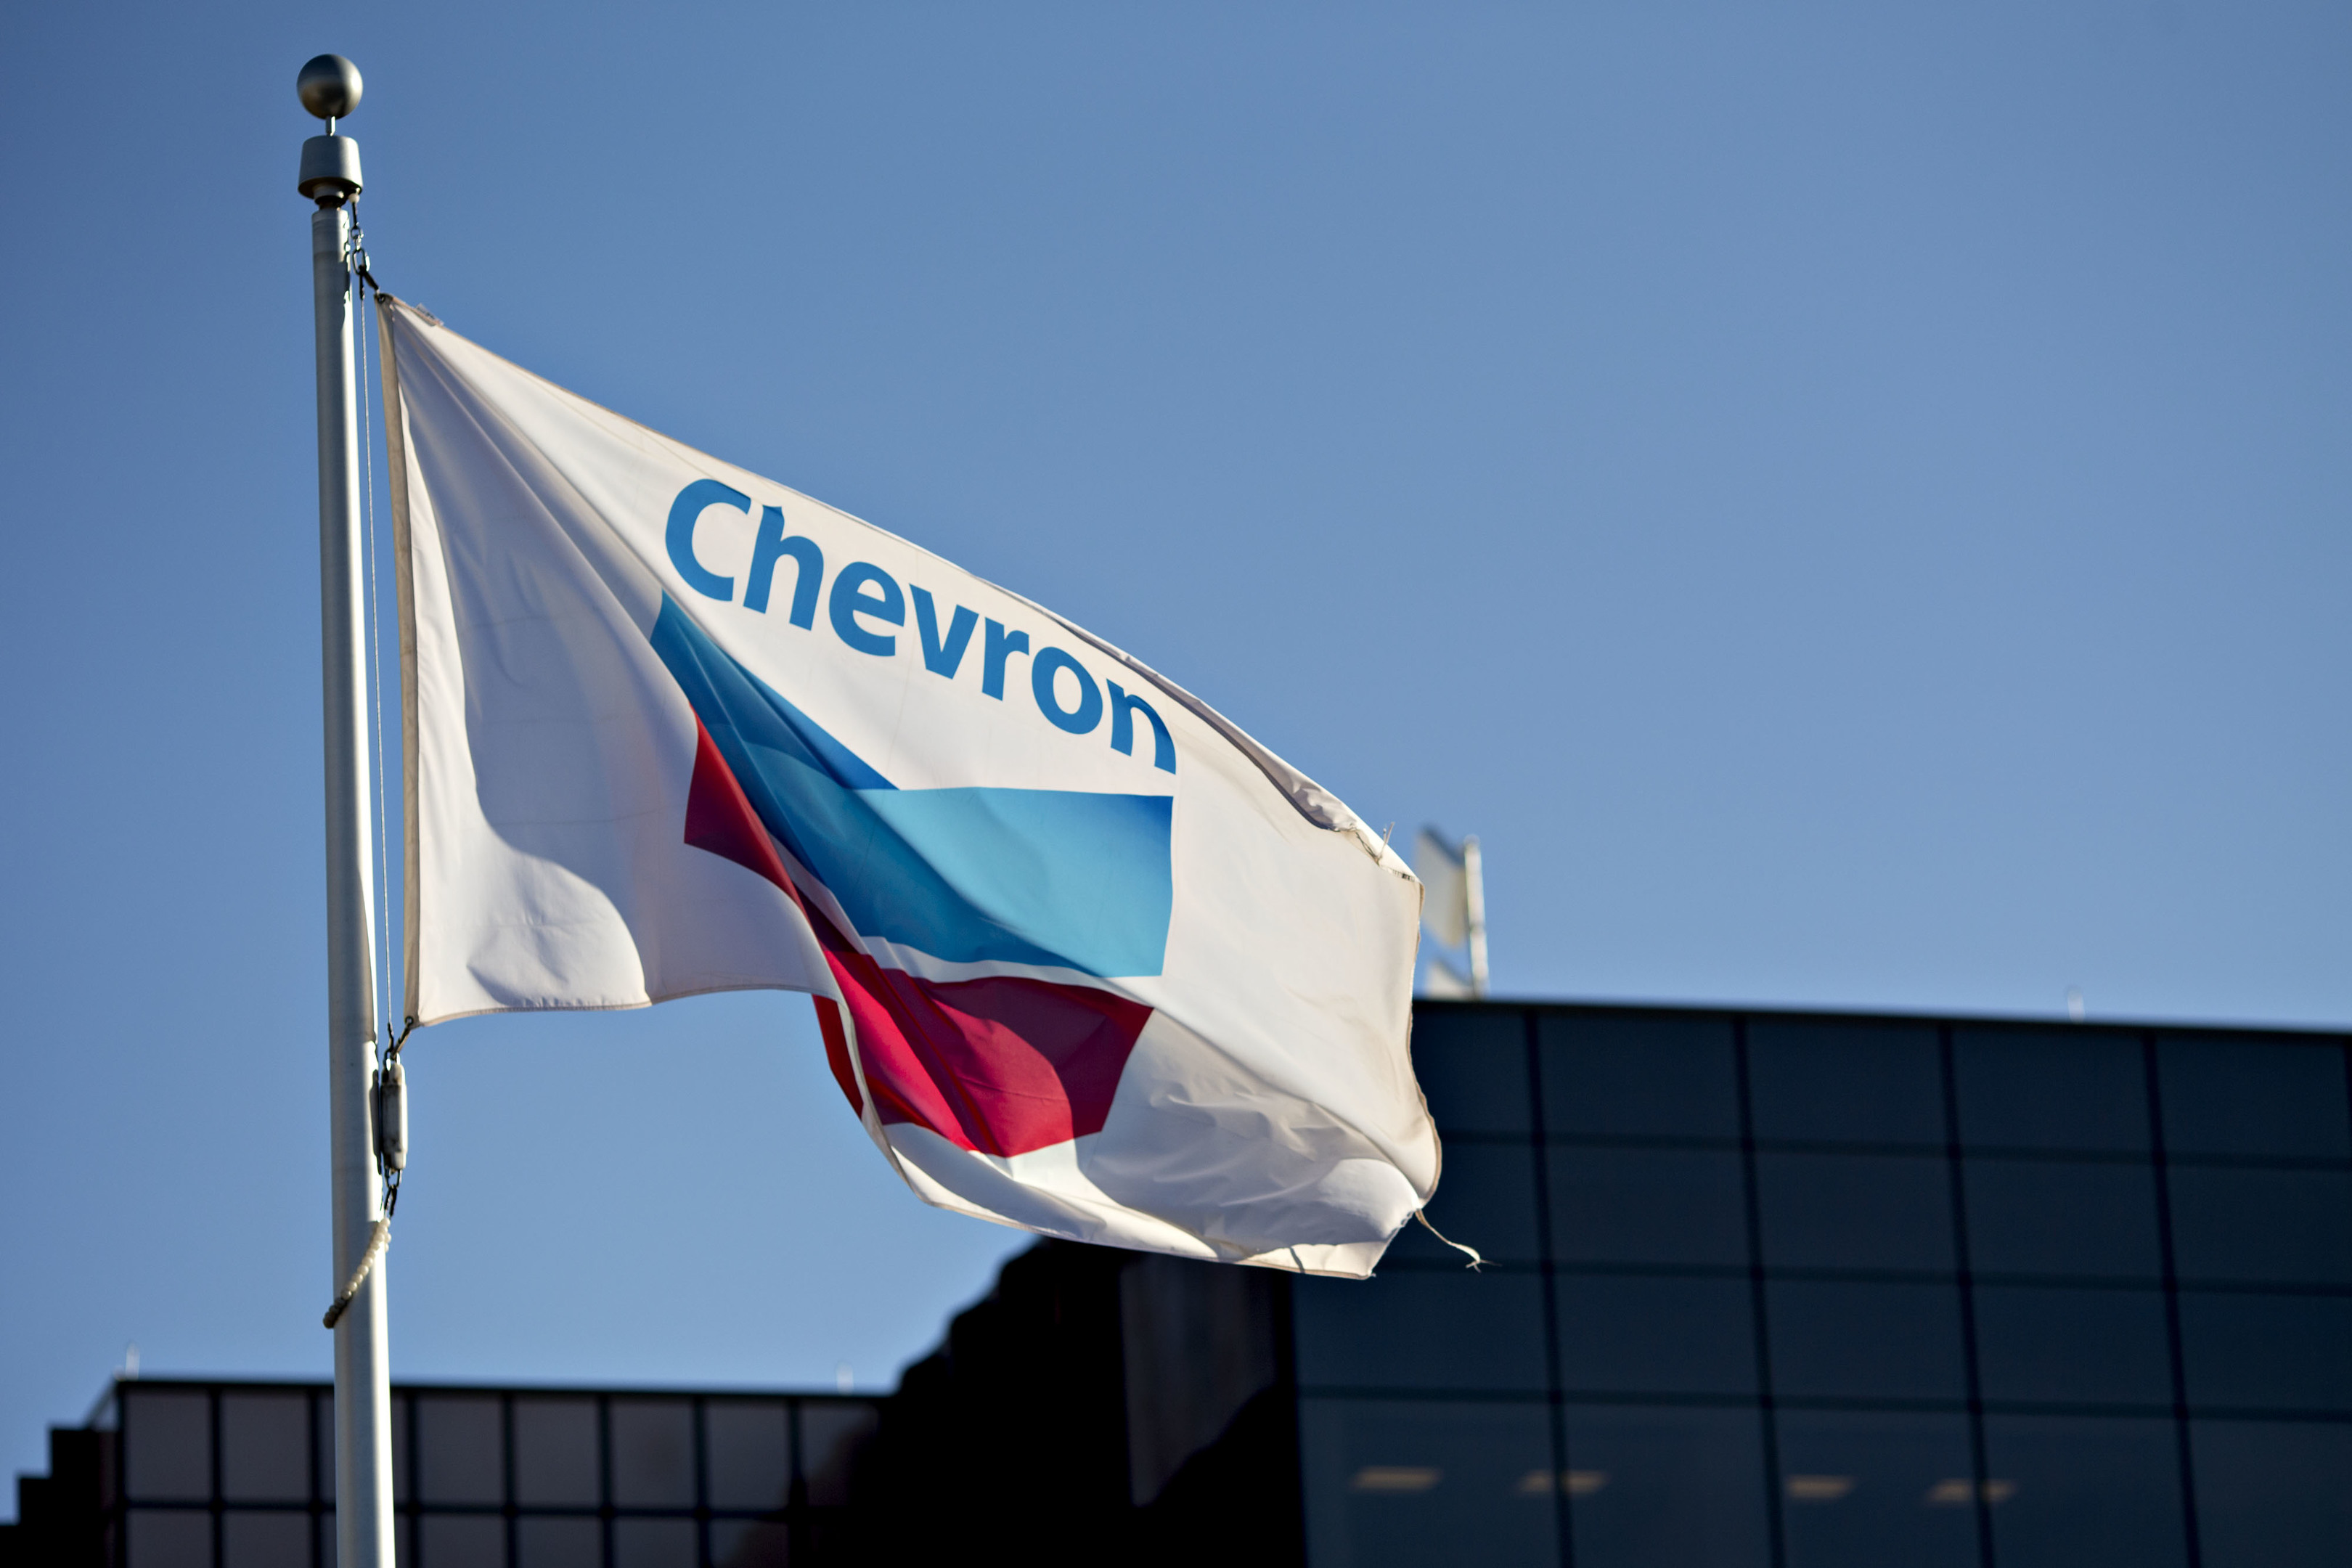 A Chevron Corp. flag flies outside an office building in Midland, Texas, U.S., on Thursday, March 1, 2018. Photographer: Daniel Acker/Bloomberg